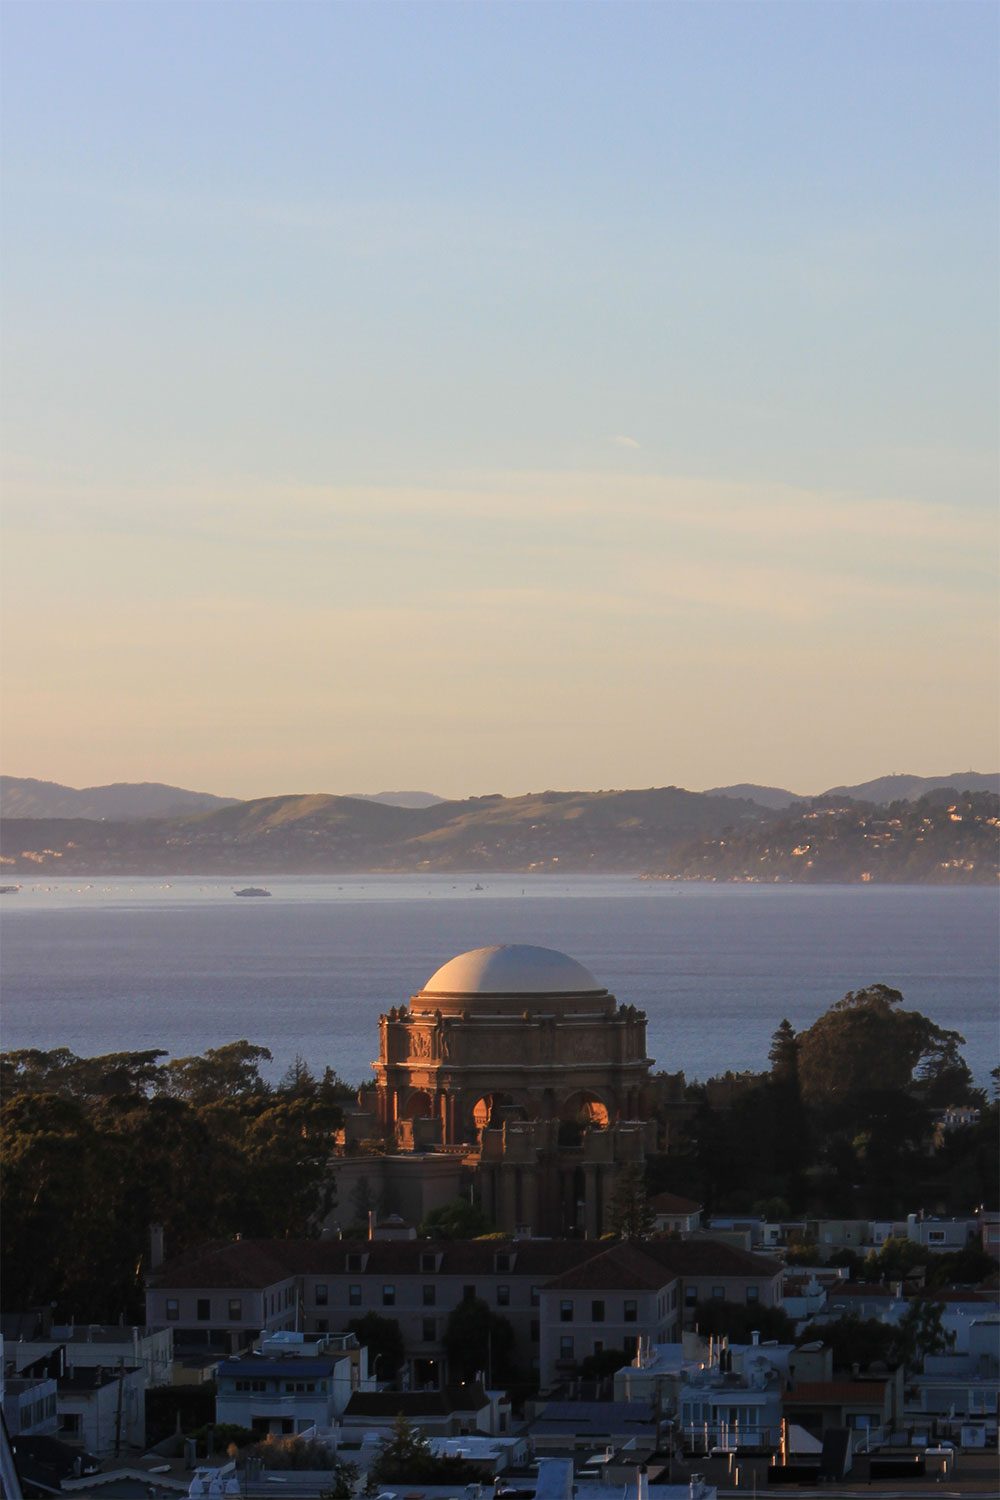 9-Savannah-Rose-Travels---San-Francisco-California---Day-1